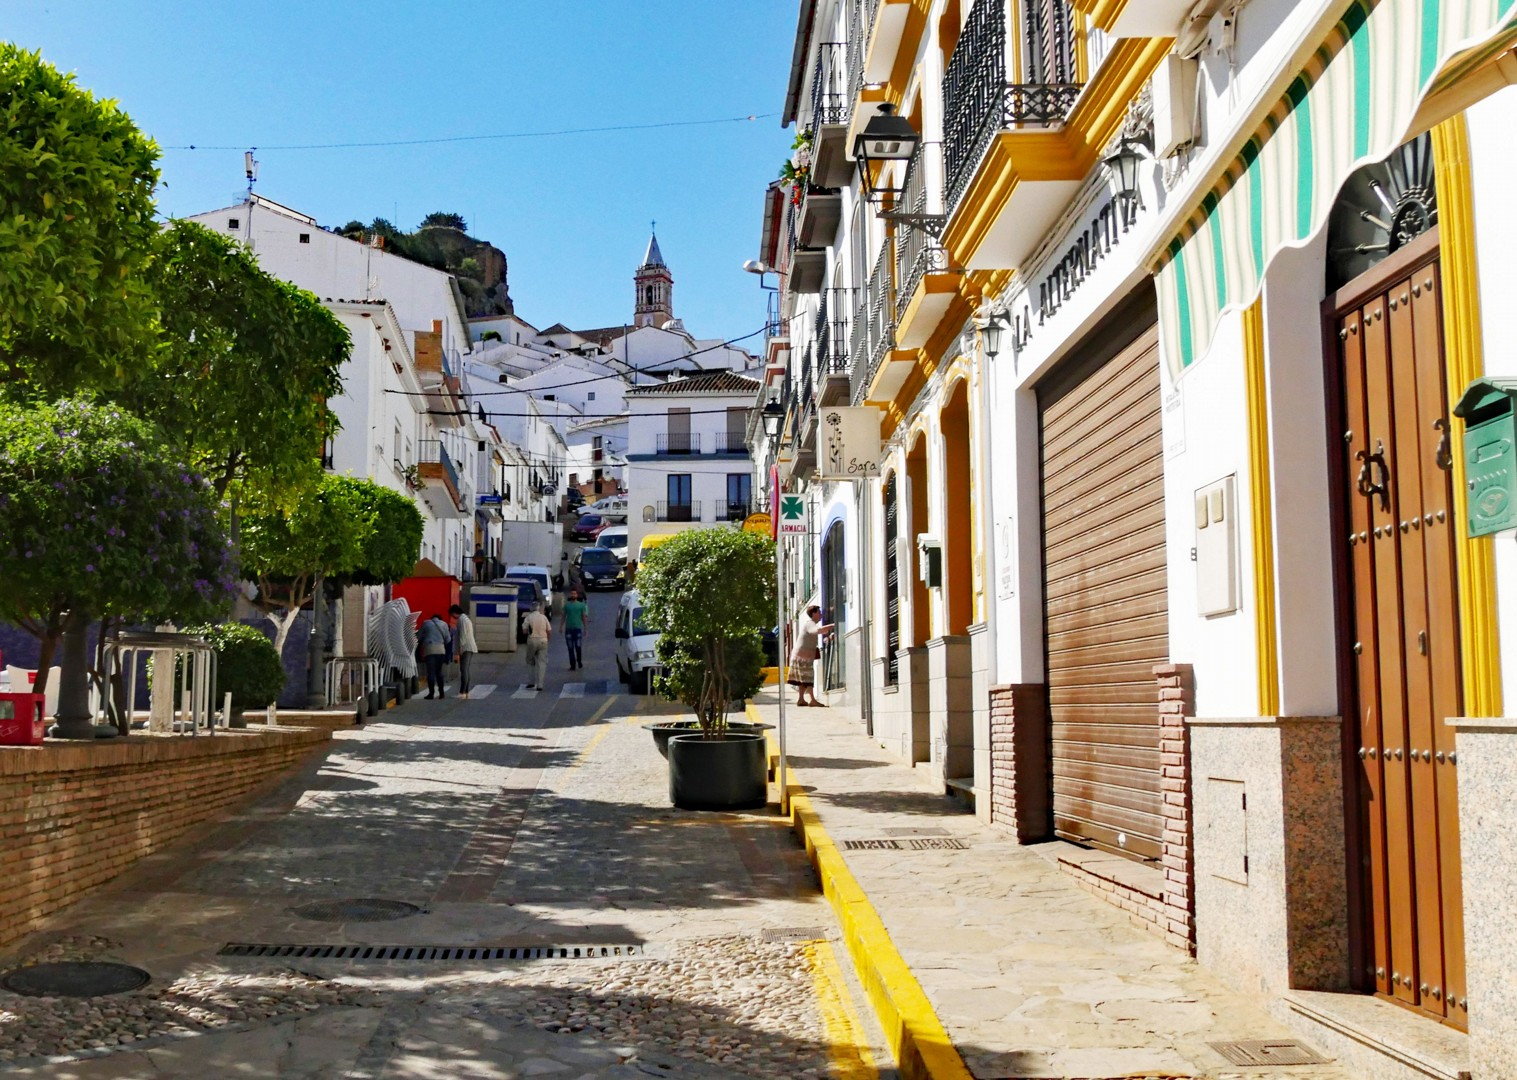 cobbled-street-ronda-road-cycling-trip.jpg - Spain - Del Norte al Sur - Basque Country to Andalucia - Guided Road Cycling Holiday - Road Cycling